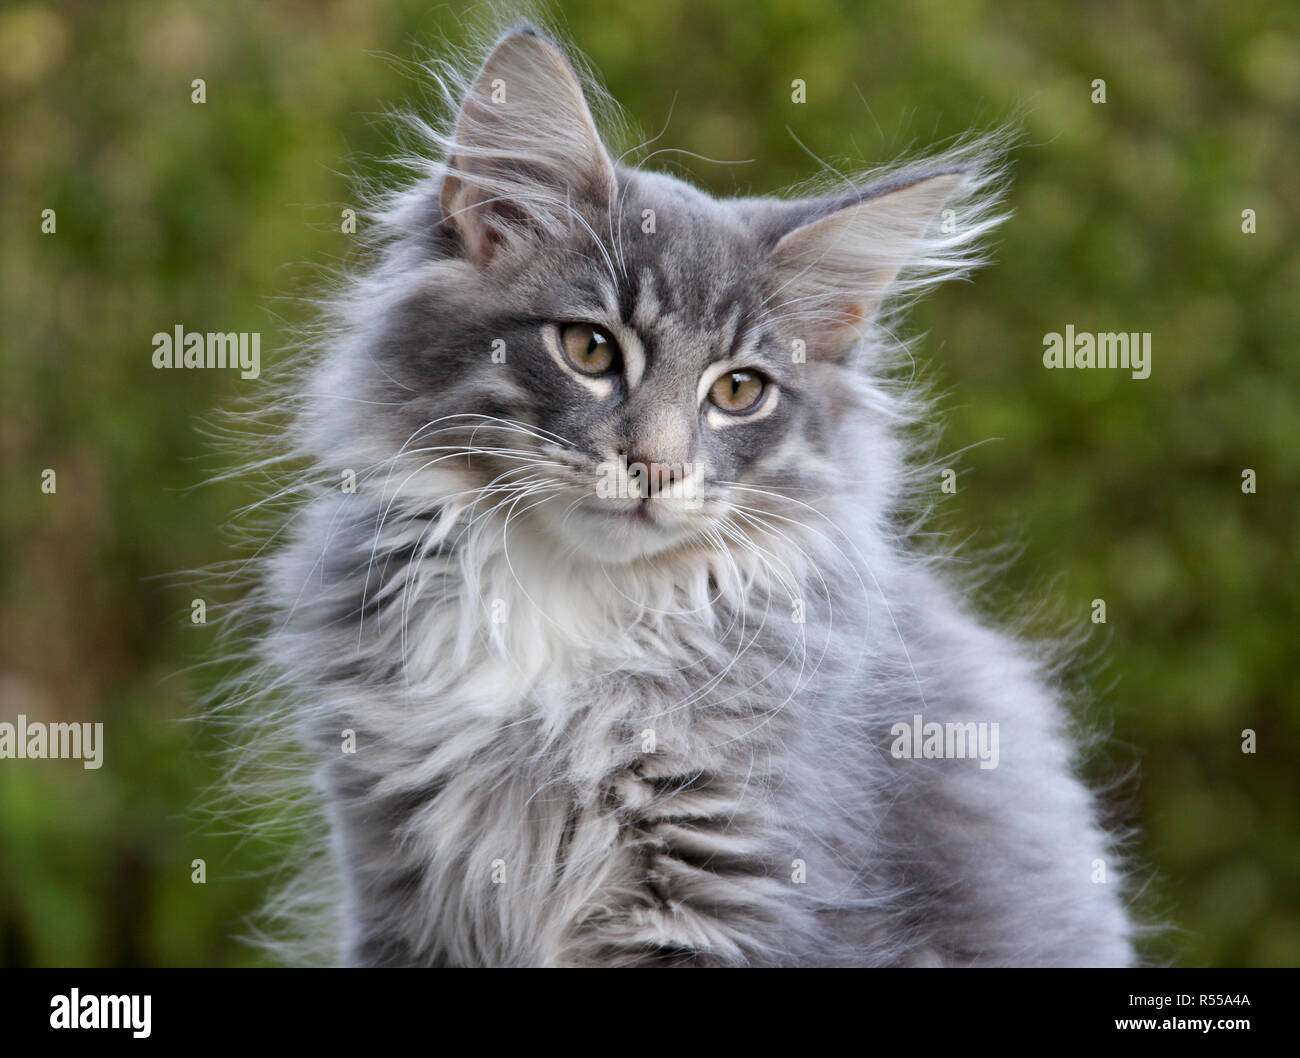 Norwegian Forest Kitten High Resolution Stock Photography And Images Alamy